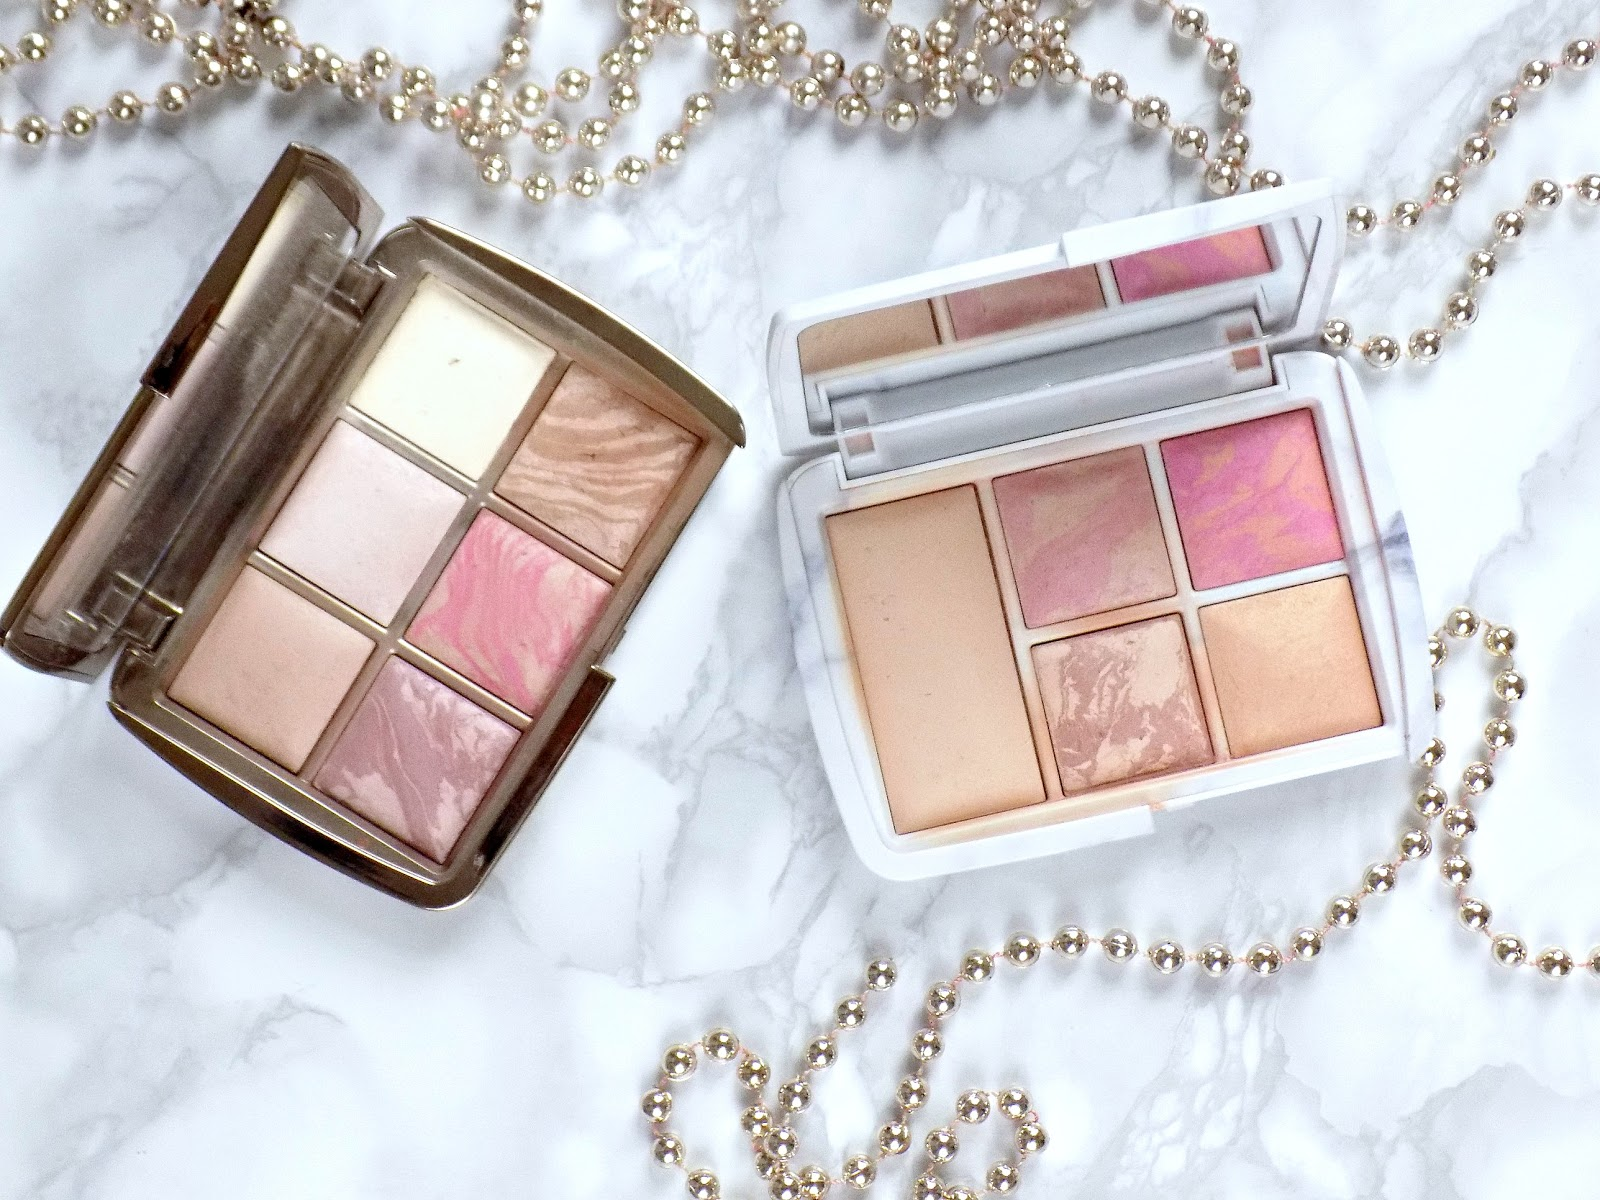 My favourite beauty discoveries of 2016 - hourglass surreal light palette